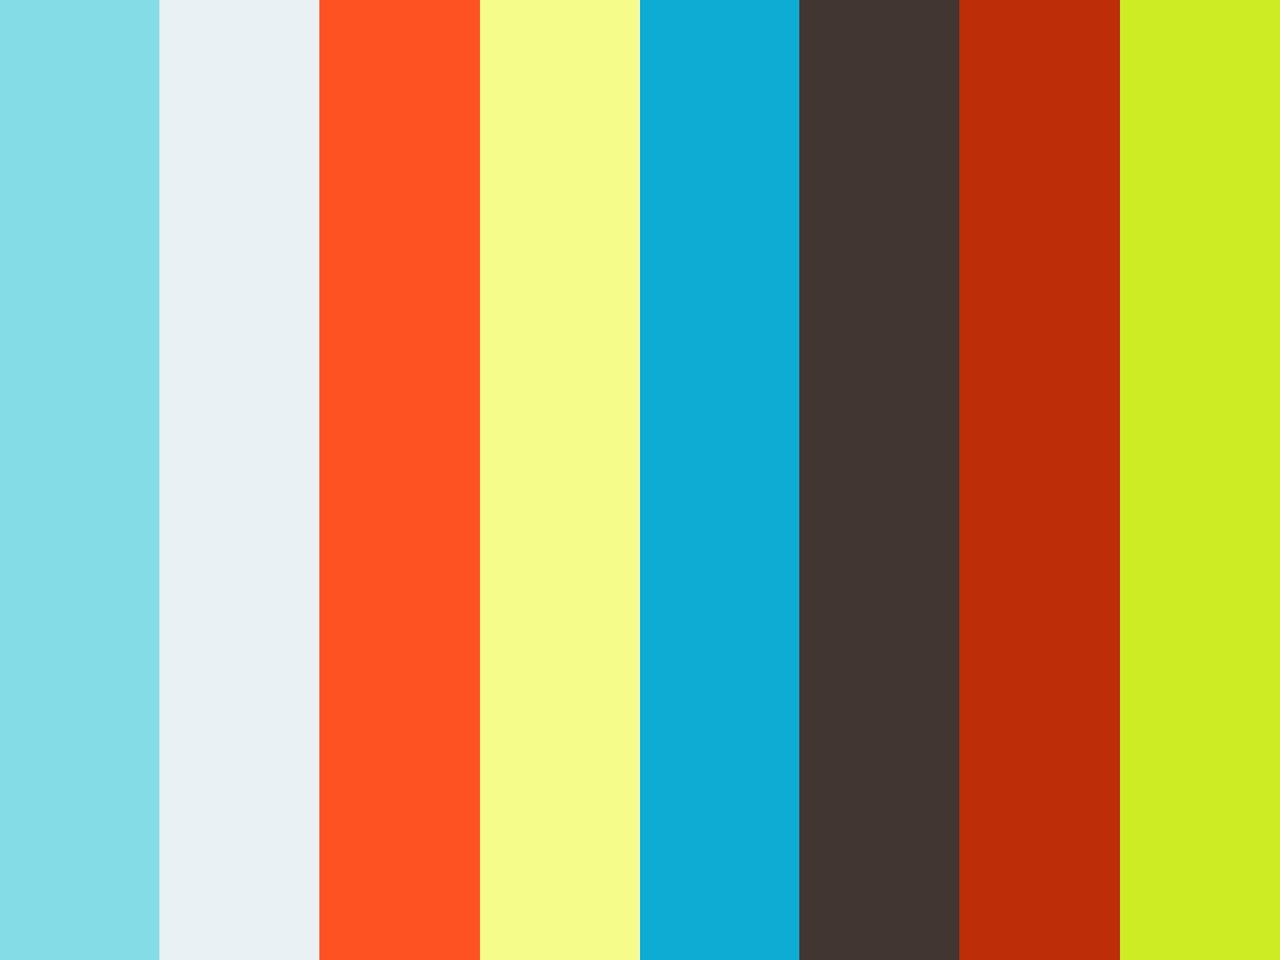 Lawan the elephant in Thailand